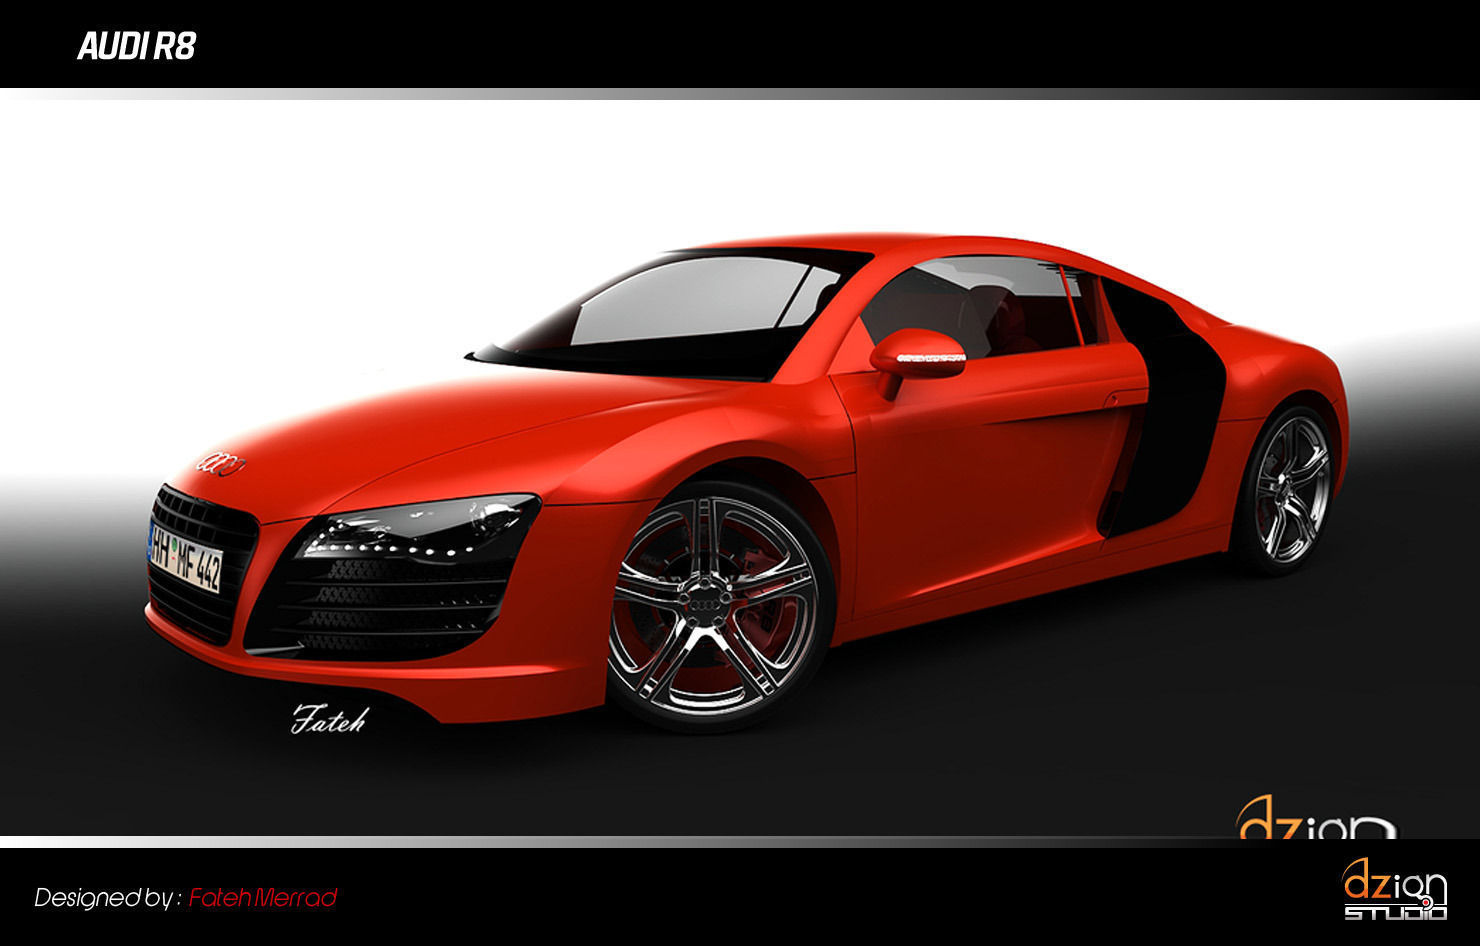 audi r8 free 3d model stl sldprt sldasm slddrw. Black Bedroom Furniture Sets. Home Design Ideas